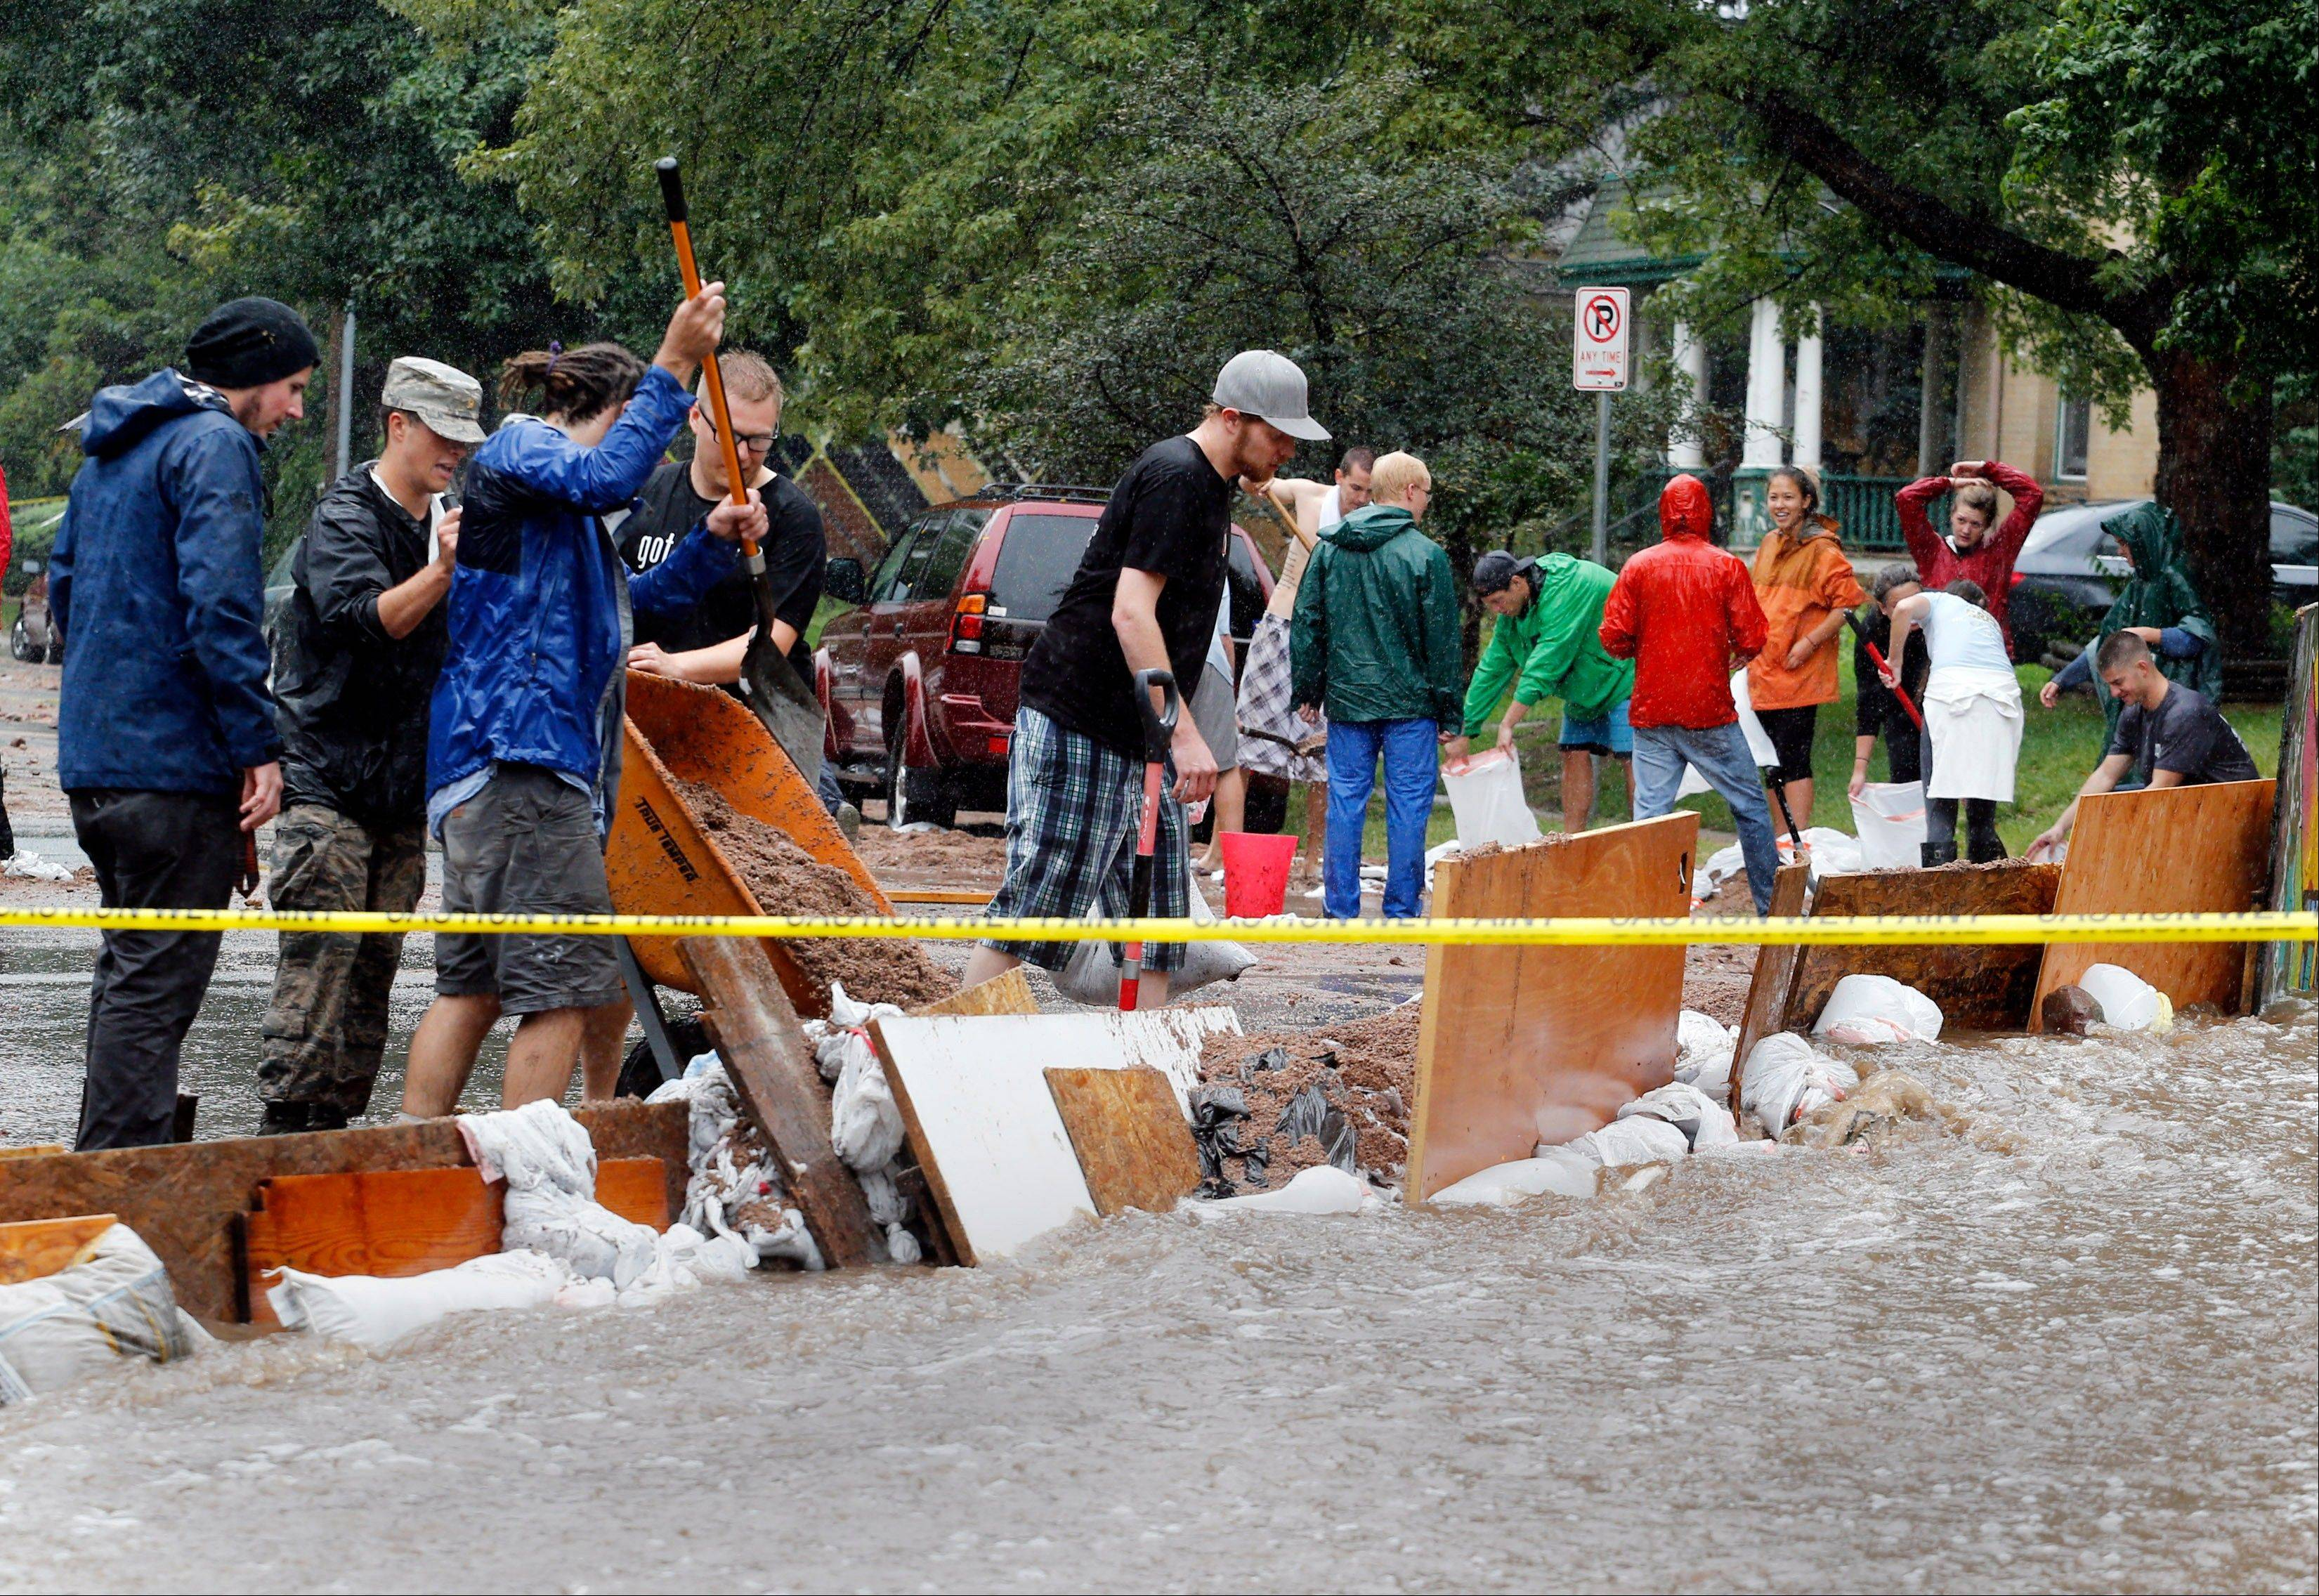 Residence of an apartment house work to divert flood water from their building in Boulder, Colo., on Thursday, Sept. 12, 2013. Flash flooding in Colorado has cut off access to towns, closed the University of Colorado in Boulder and left at least three people dead.